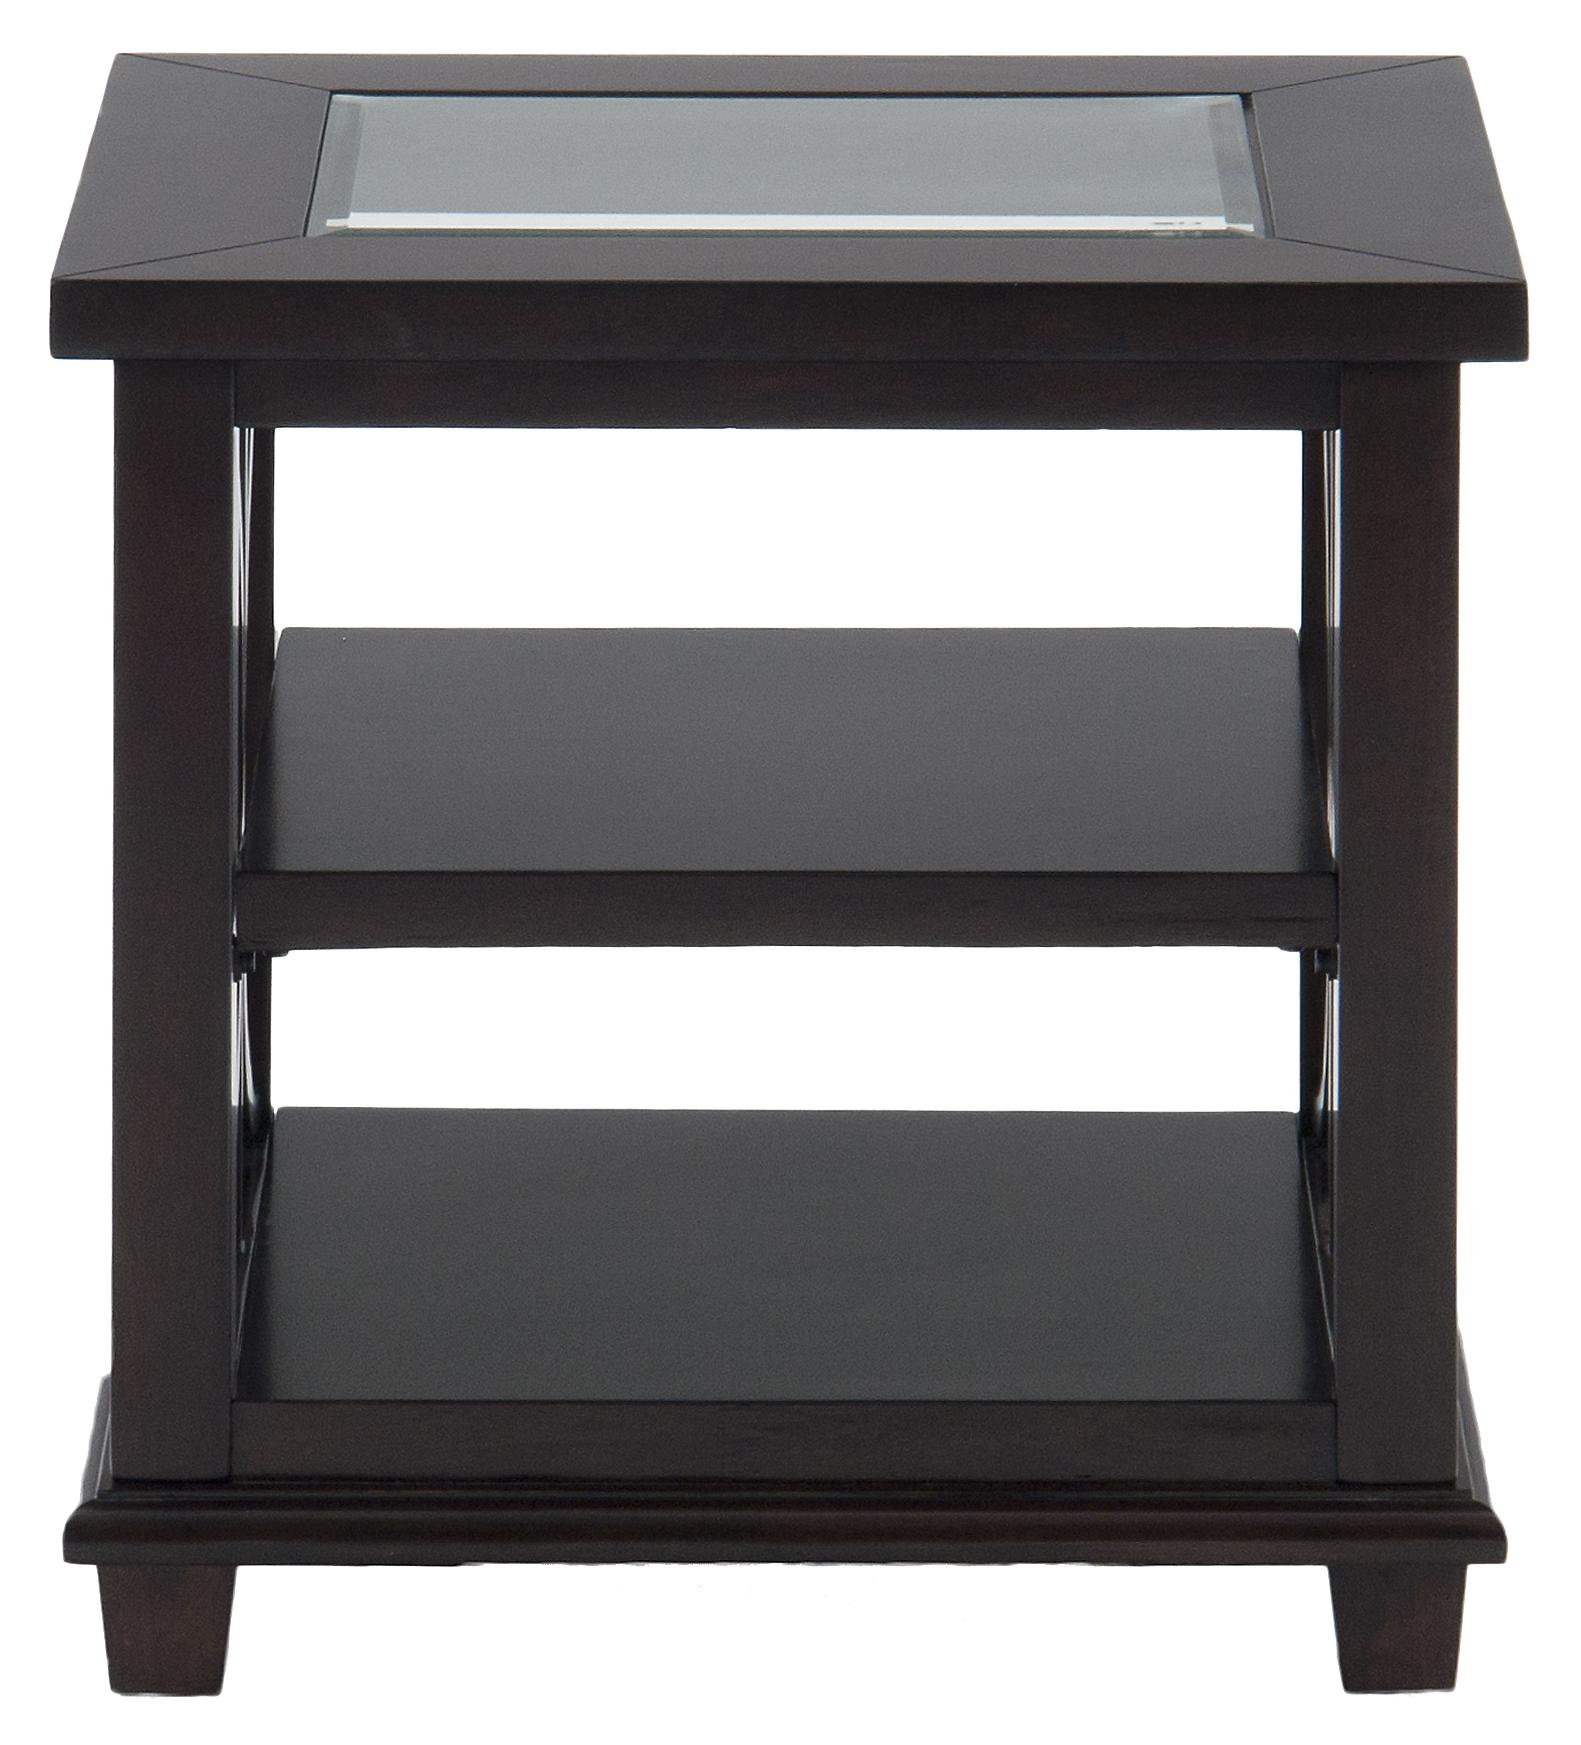 Panama brown contemporary beveled glass end table with concentric circle design morris home Morris home furniture hours